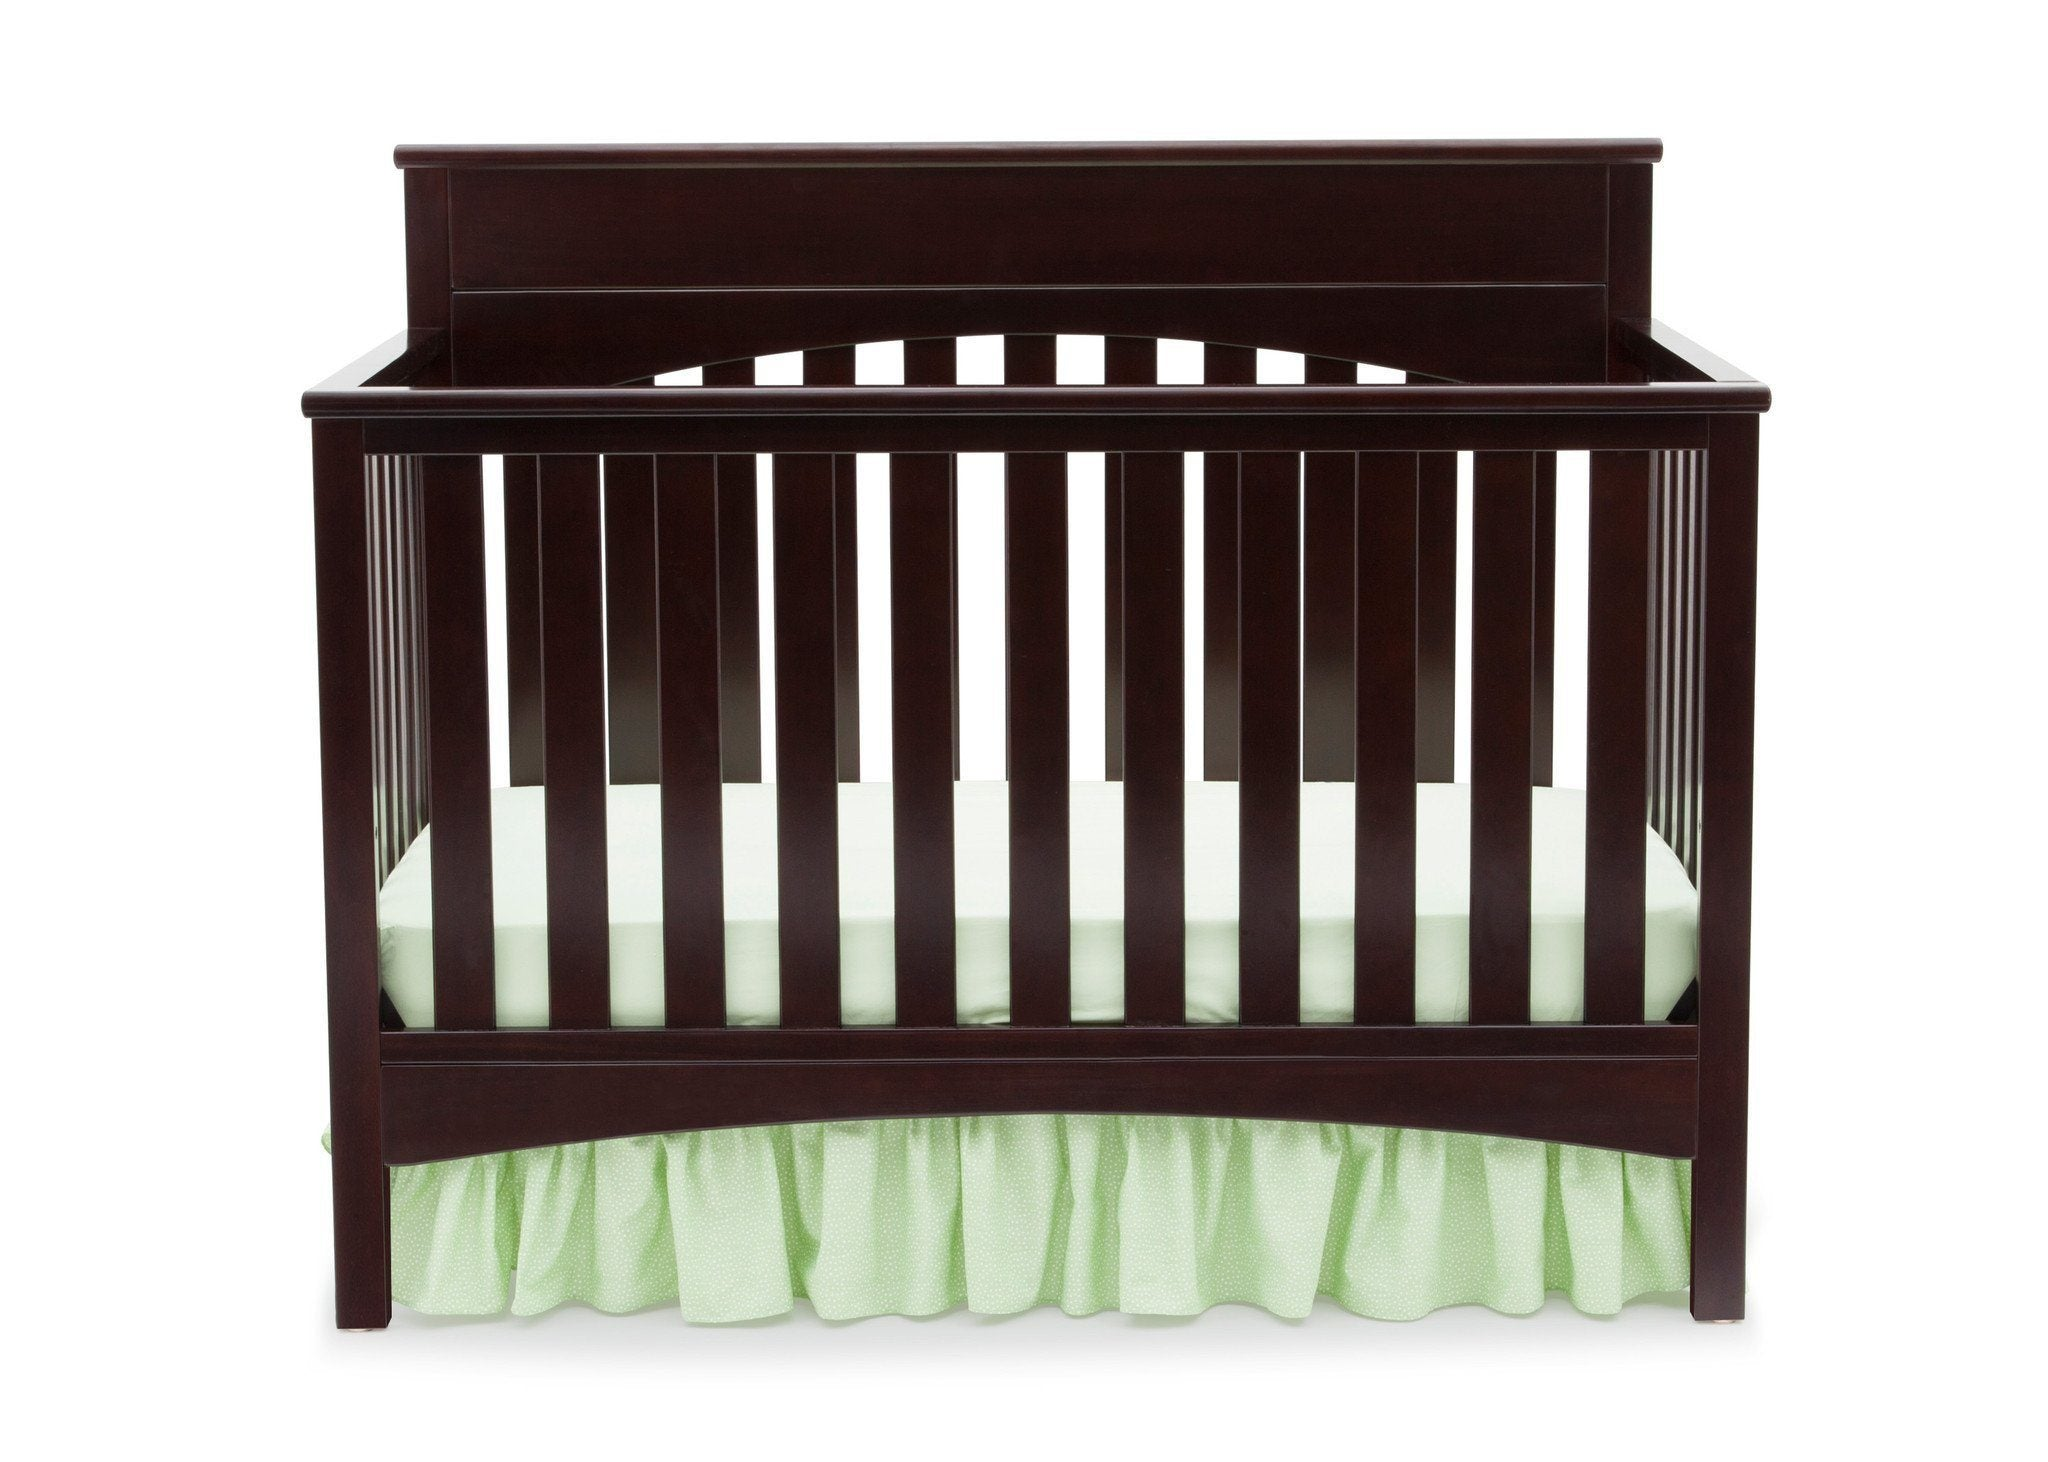 Delta Children Dark Chocolate (207) Bennington Lifestyle 4-in-1 Crib, Crib Conversion Front View b1b